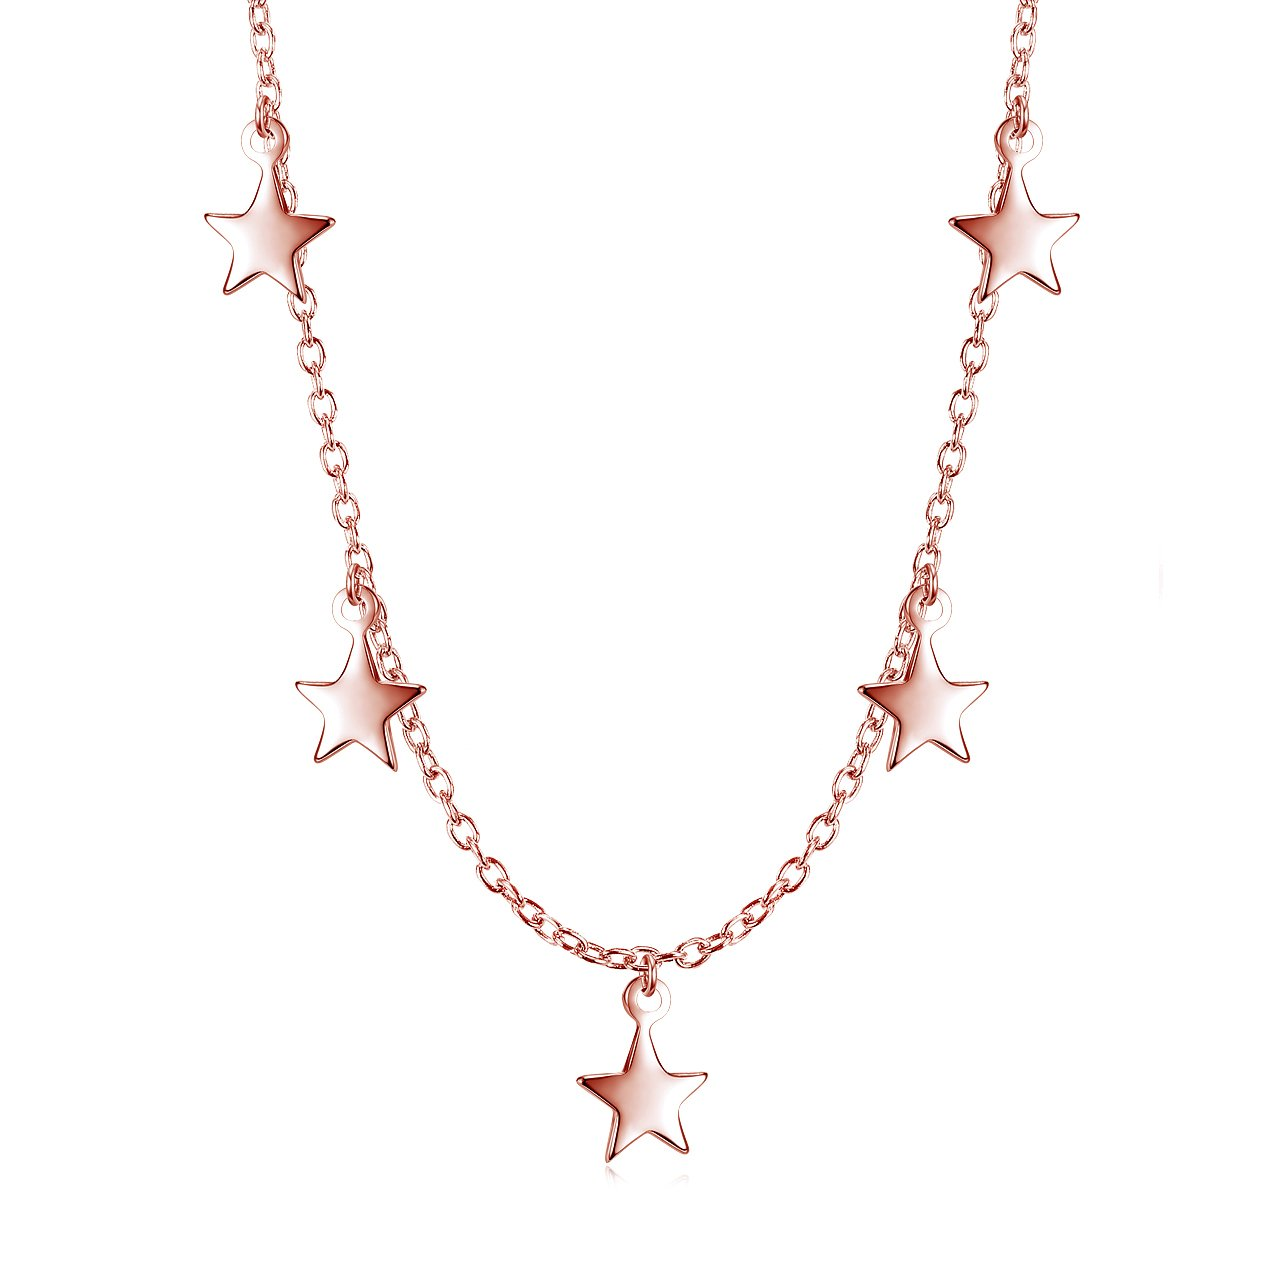 Dangling Stars Choker Necklace - Rose Gold over Sterling Silver